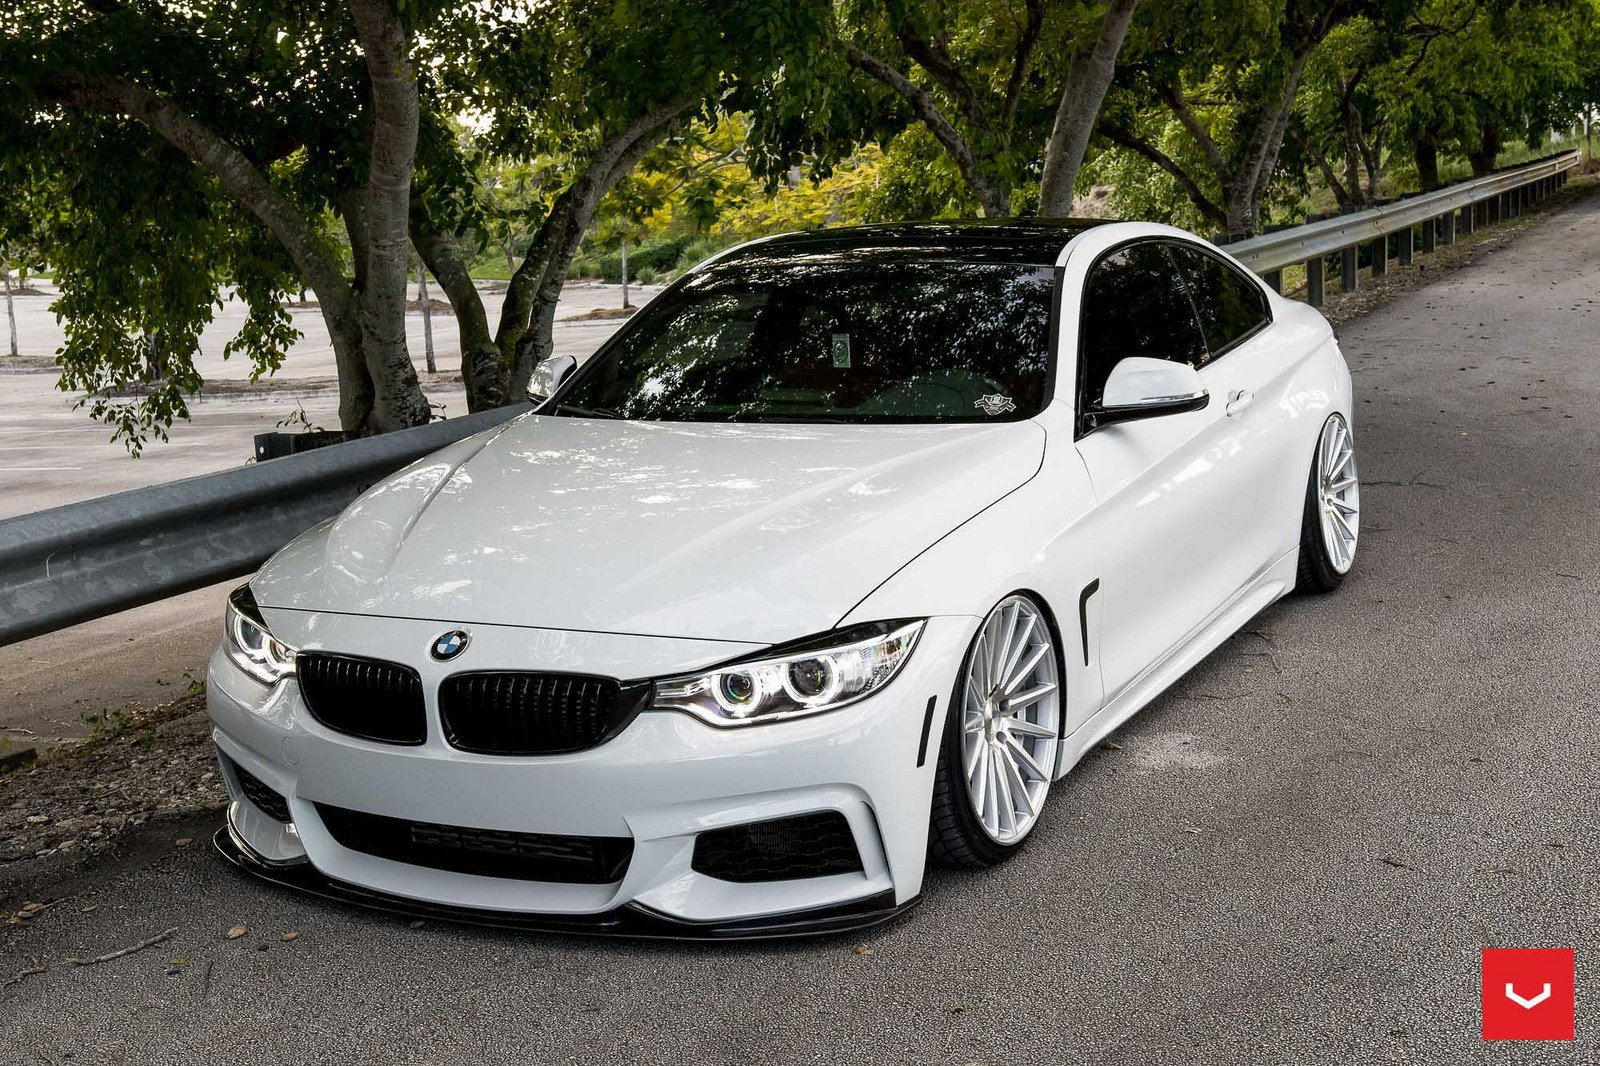 Bmw 4 series cars coupe white vossen wheels wallpaper 1600x1066 826964 wallpaperup - Bmw 2 series coupe white ...